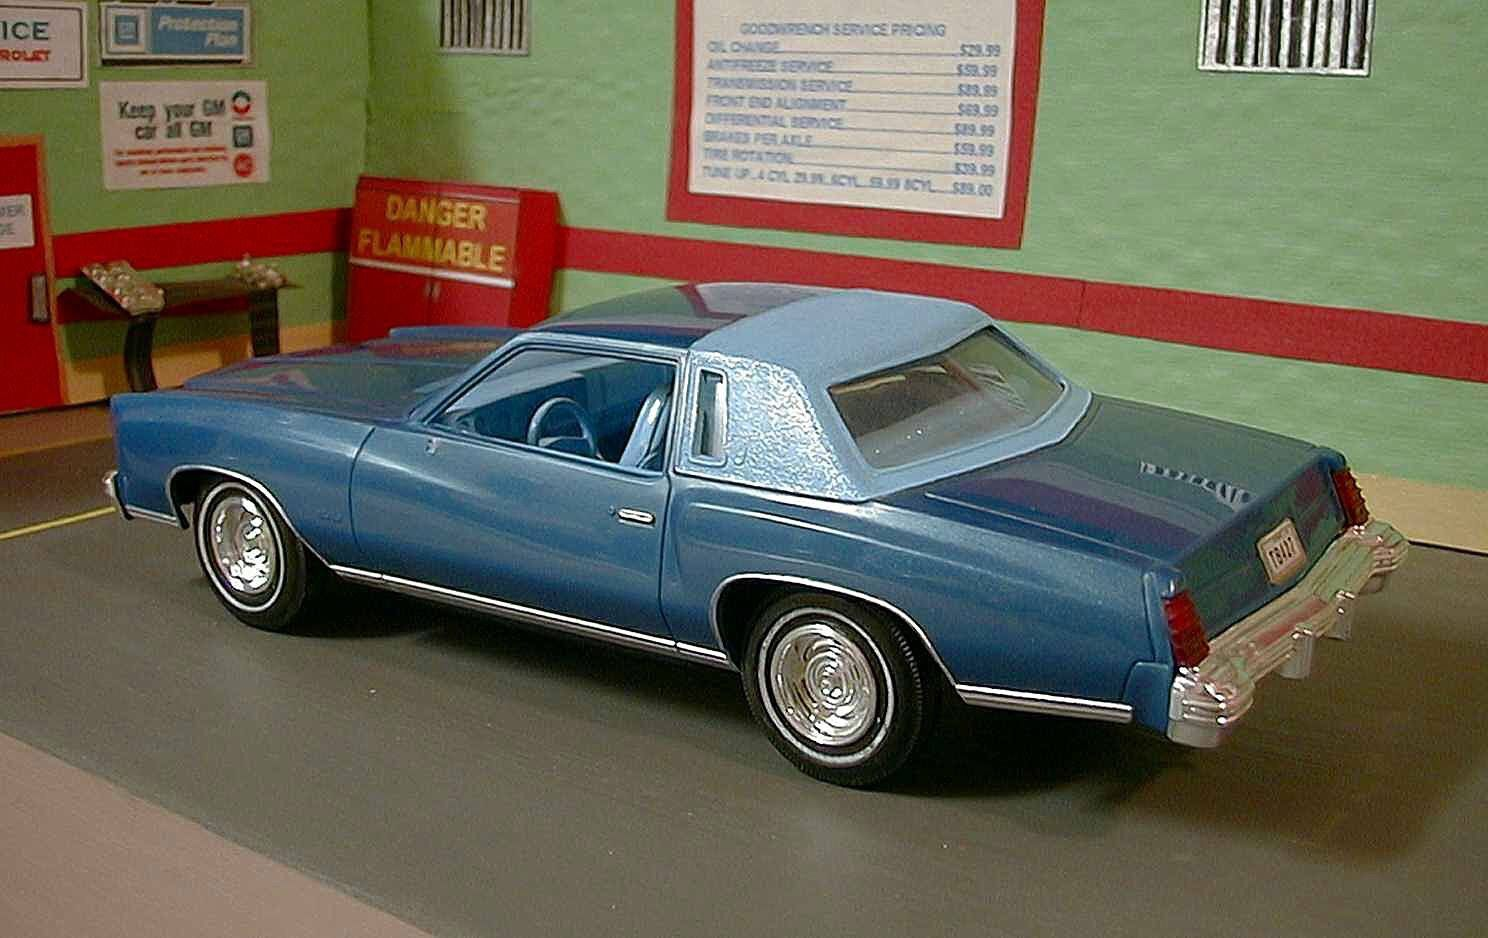 1977 Monte Carlo Model Model Cars Kits Plastic Model Cars Car